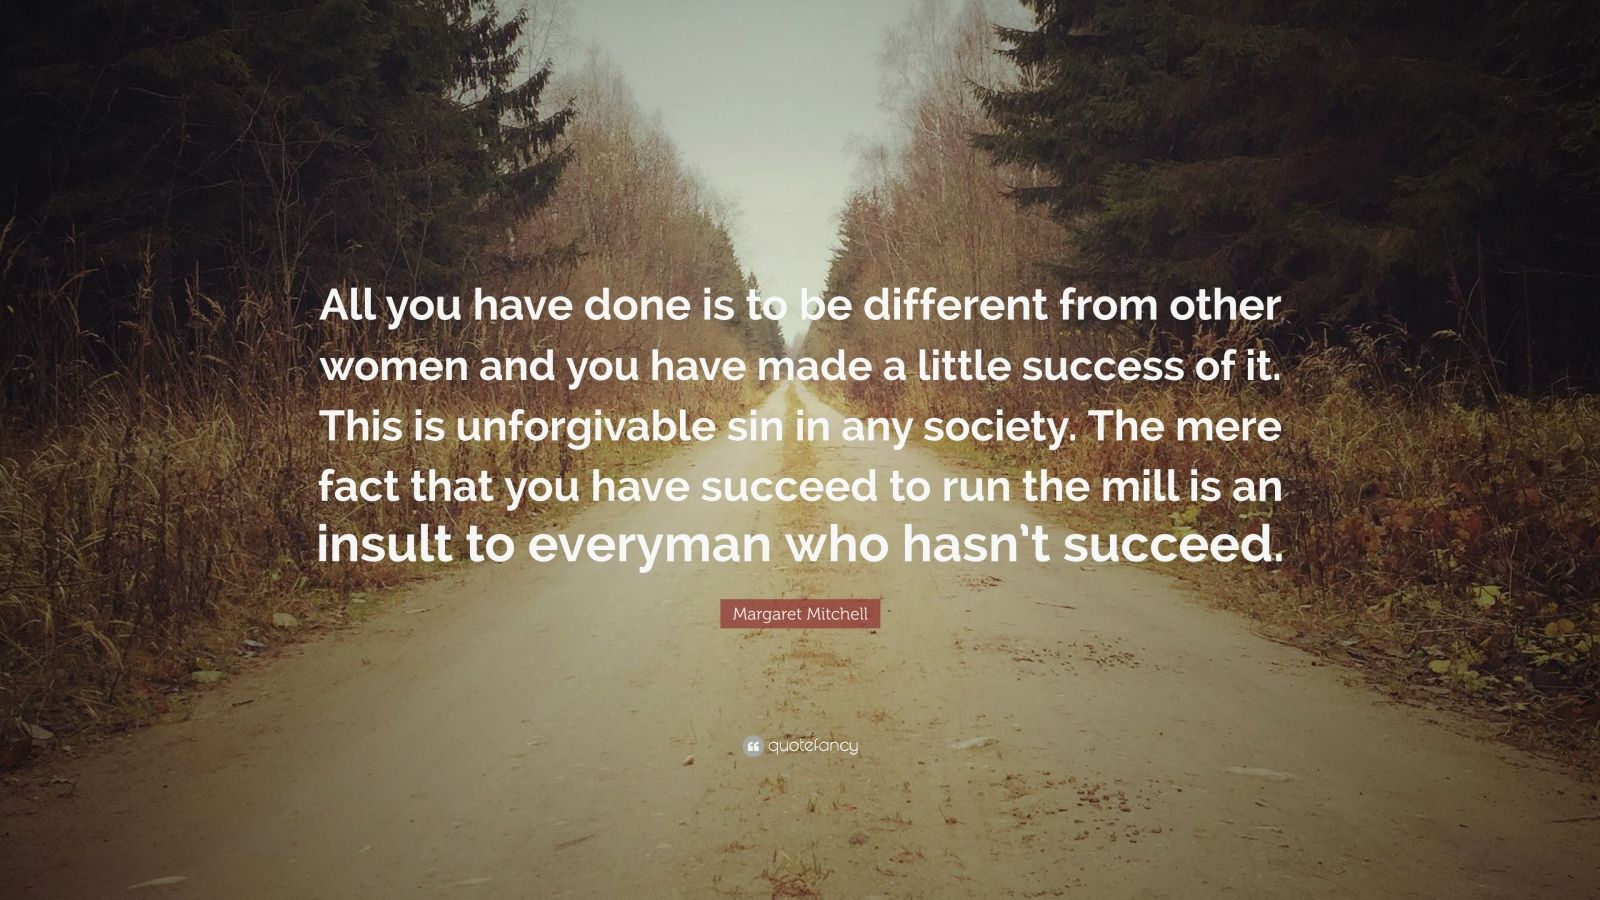 "Margaret Mitchell Quote: ""All you have done is to be different from other women and you have made a little success of it. This is unforgivable sin in any society. The mere fact that you have succeed to run the mill is an insult to everyman who hasn't succeed."""